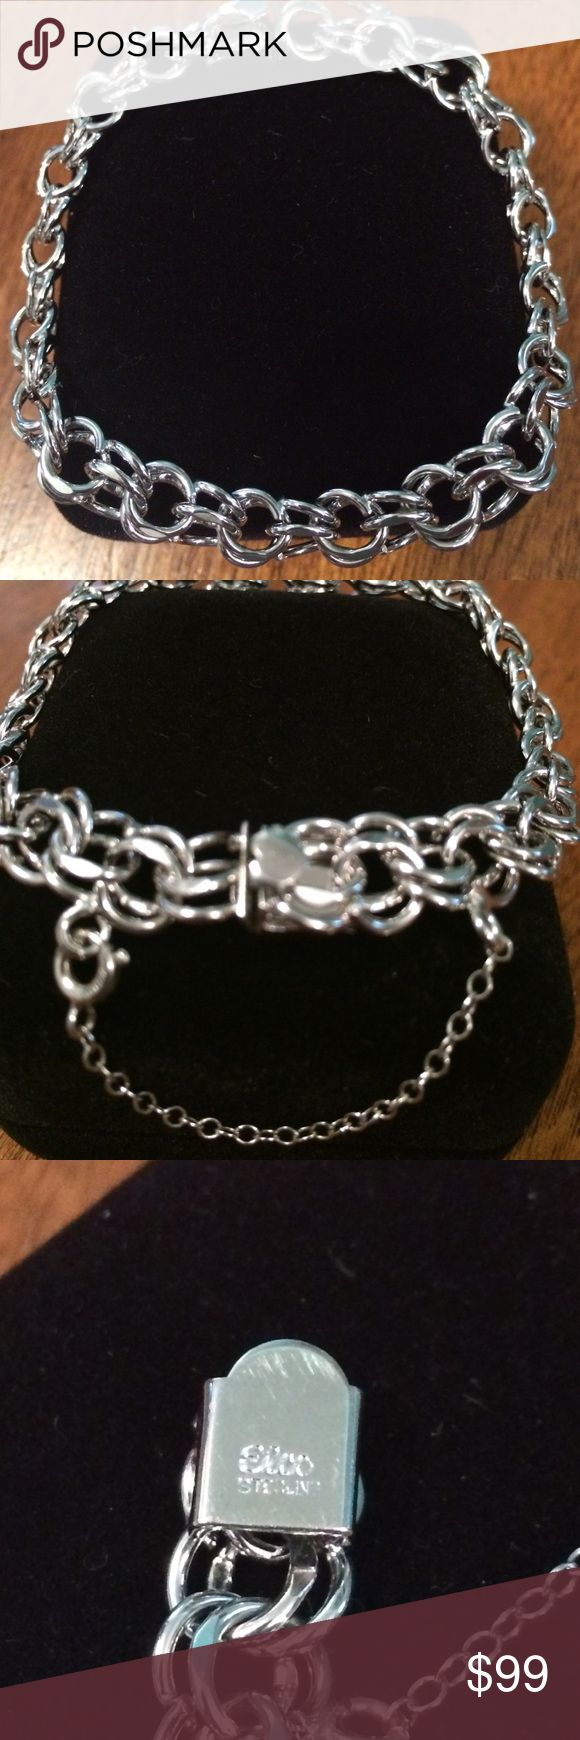 Elco Sterling Silver Double Link Charm Bracelet Elco Sterling Silver Double Link  Charm Bracelet With Push